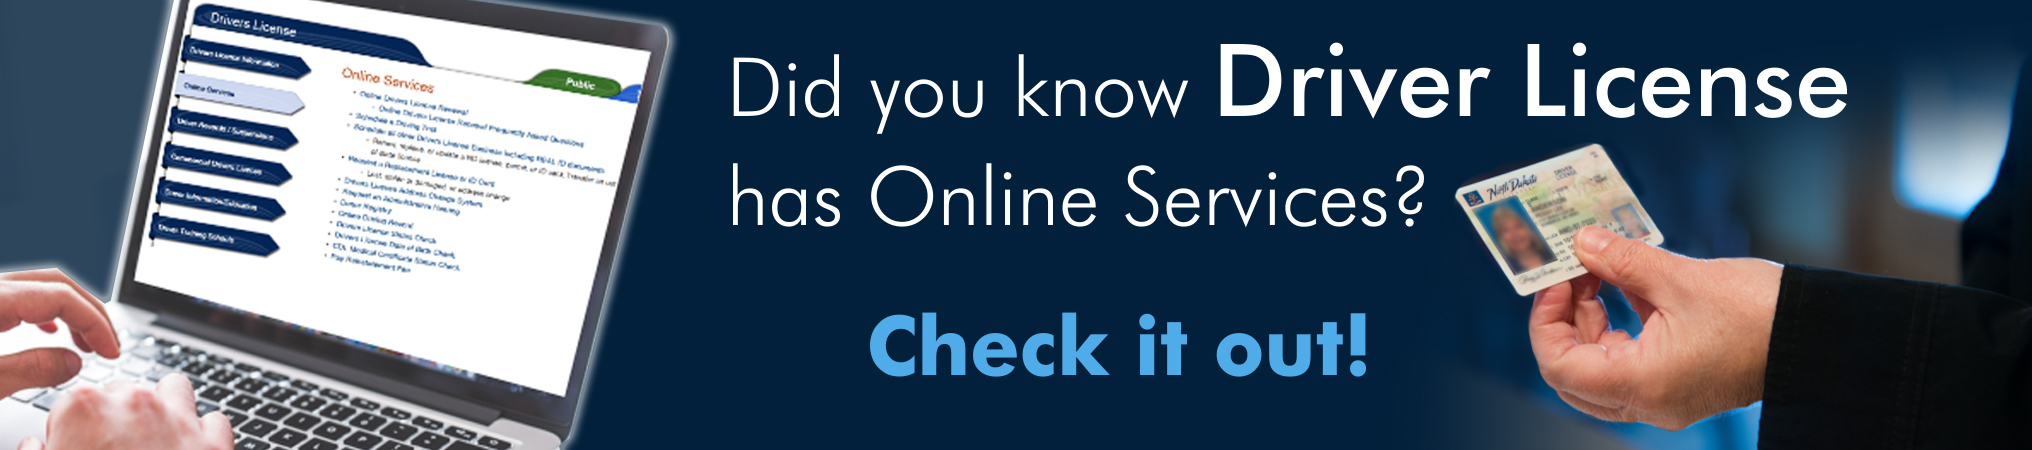 drivers license online services